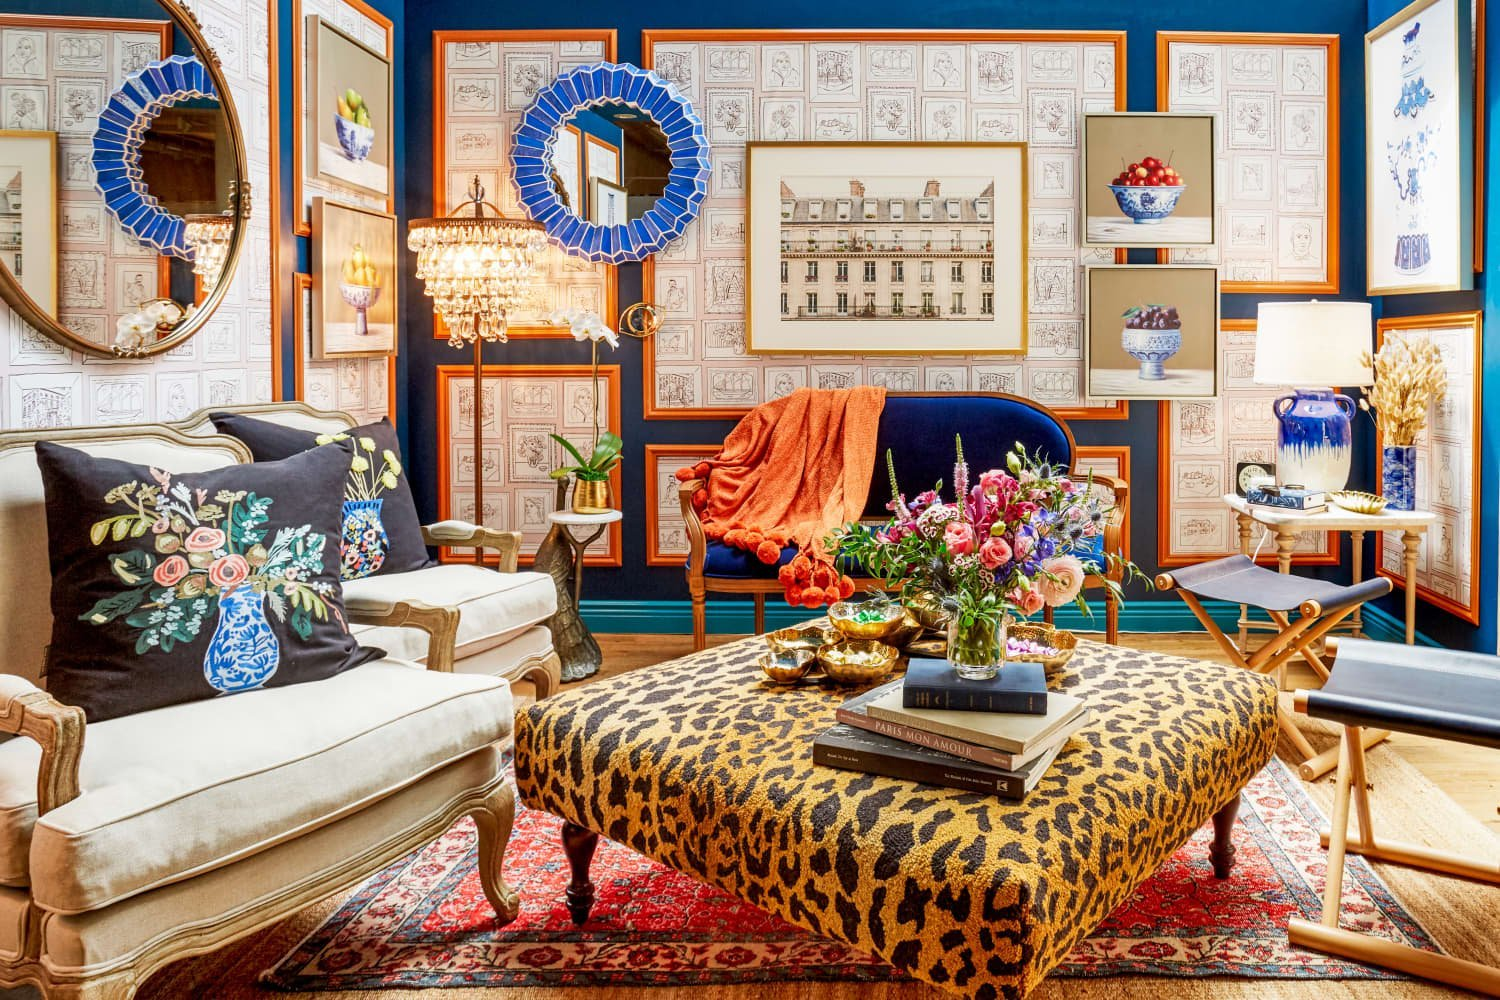 The Best Small-Space Tips, Tricks, and Design Ideas For 2021